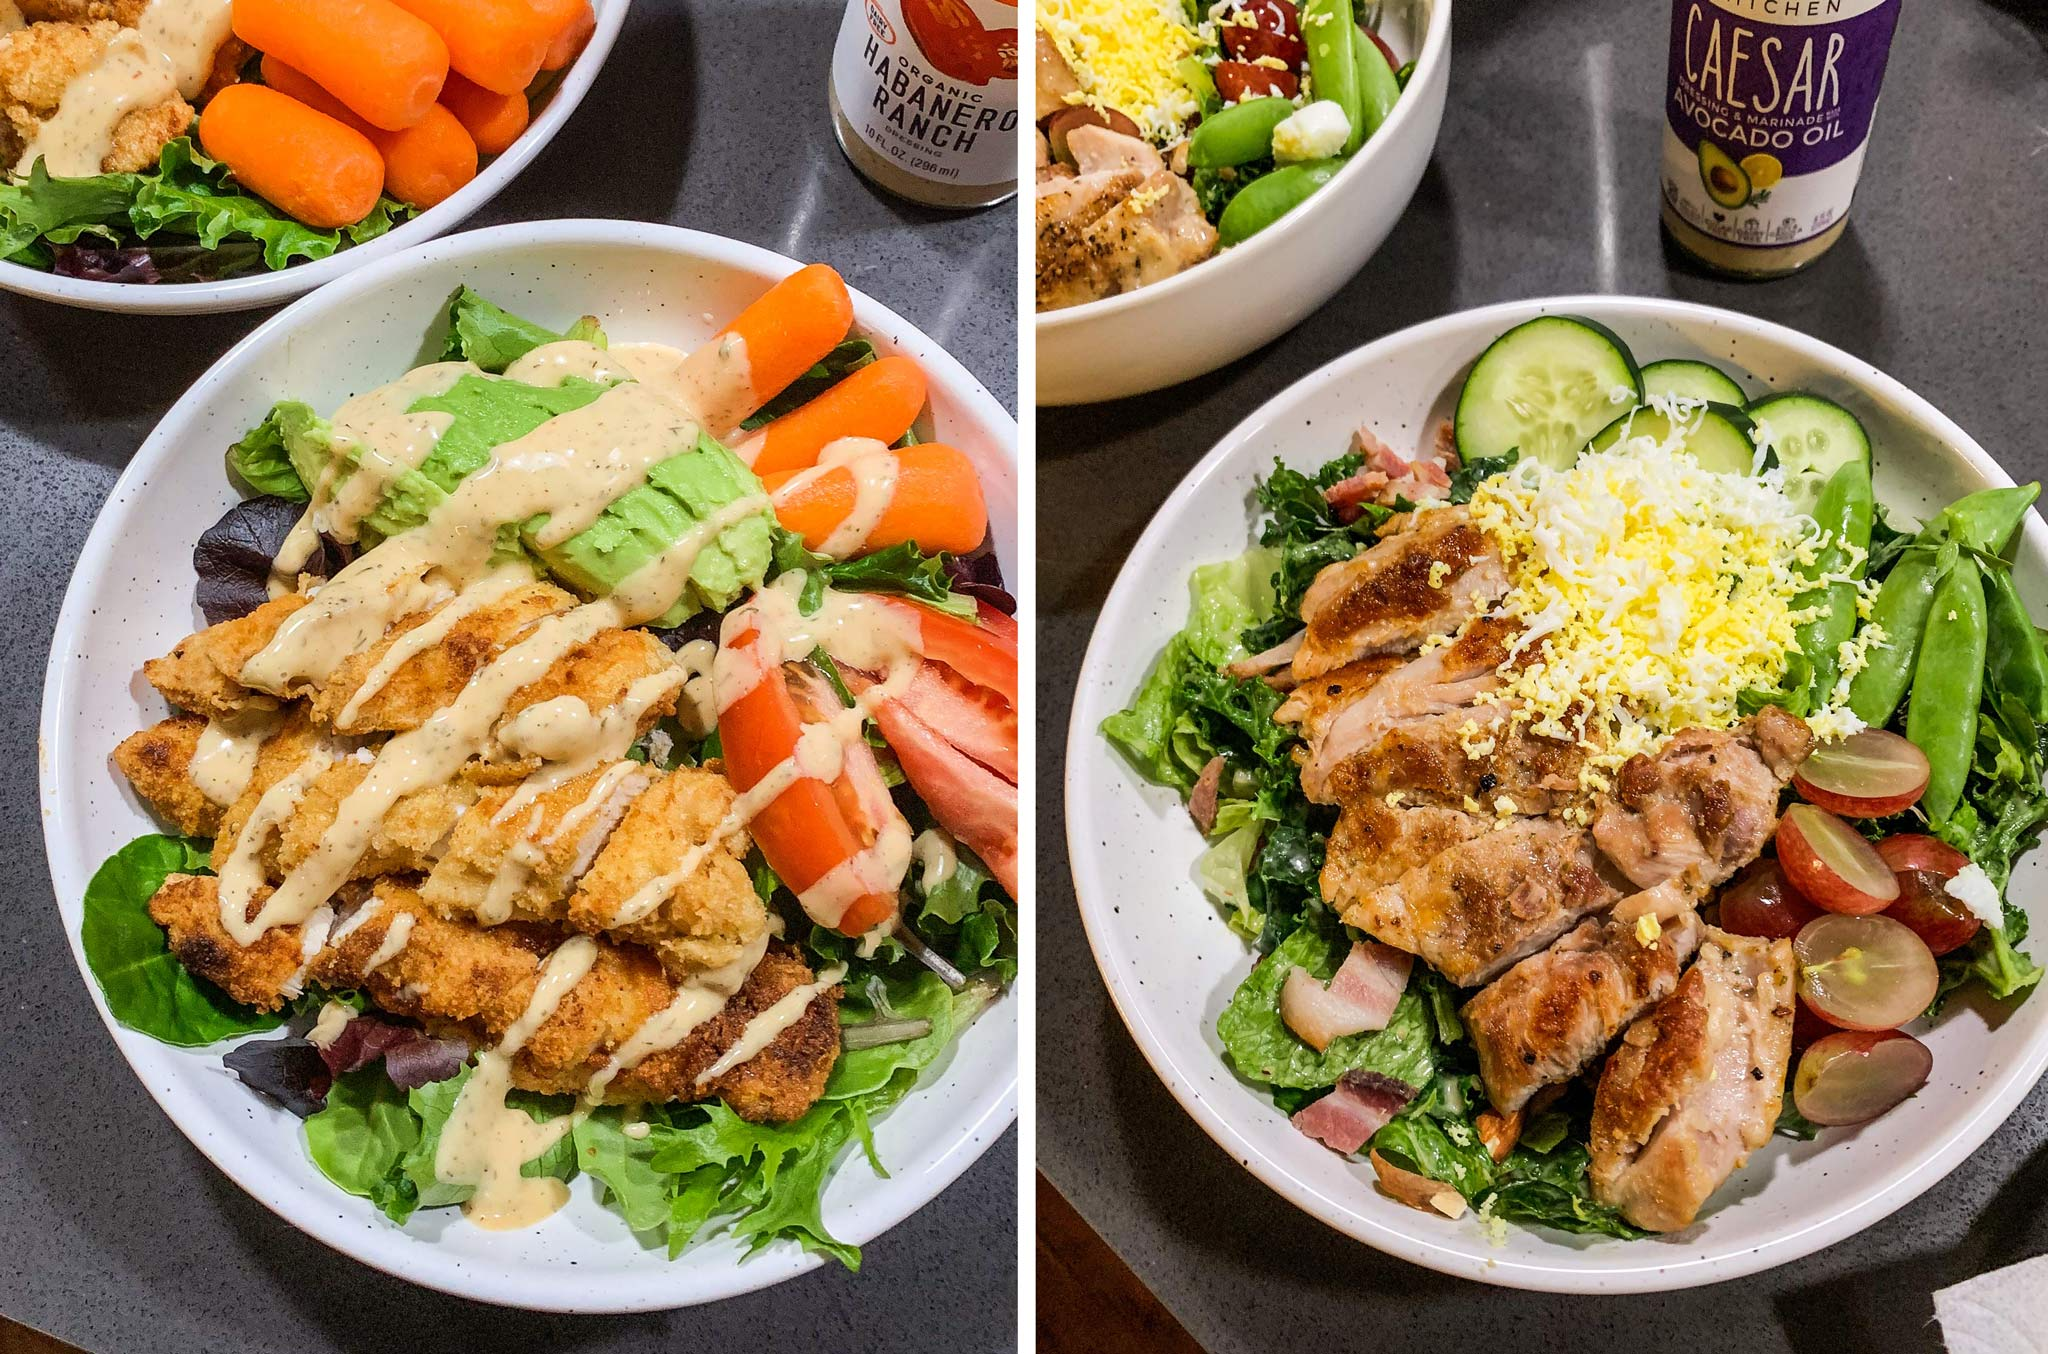 Examples of B.A.S. Big ass salads with mixed greens, lots of veggies, protein, and dressing